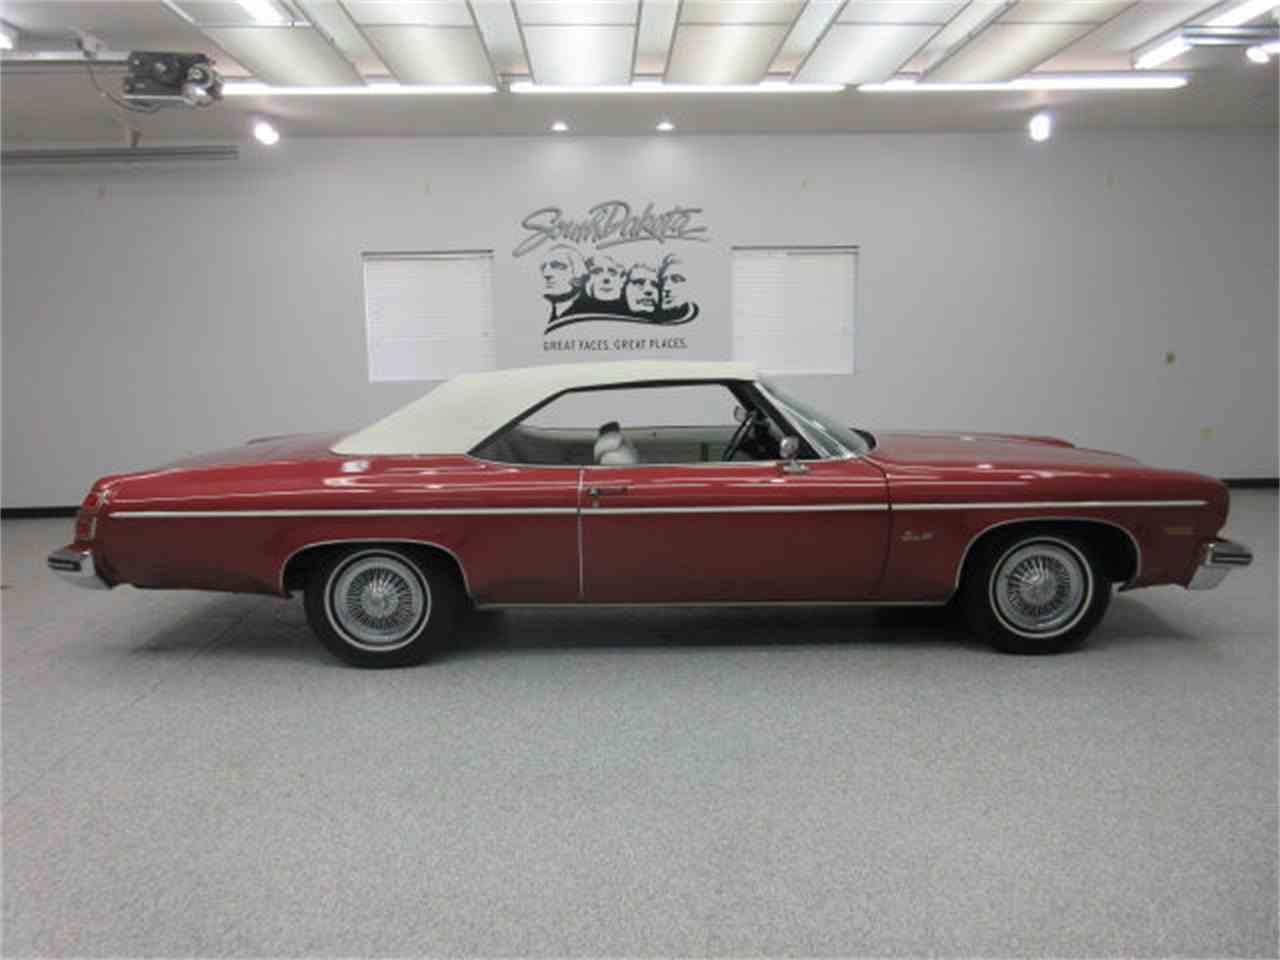 Classic Oldsmobile Delta 88 for Sale on ClassicCars.com